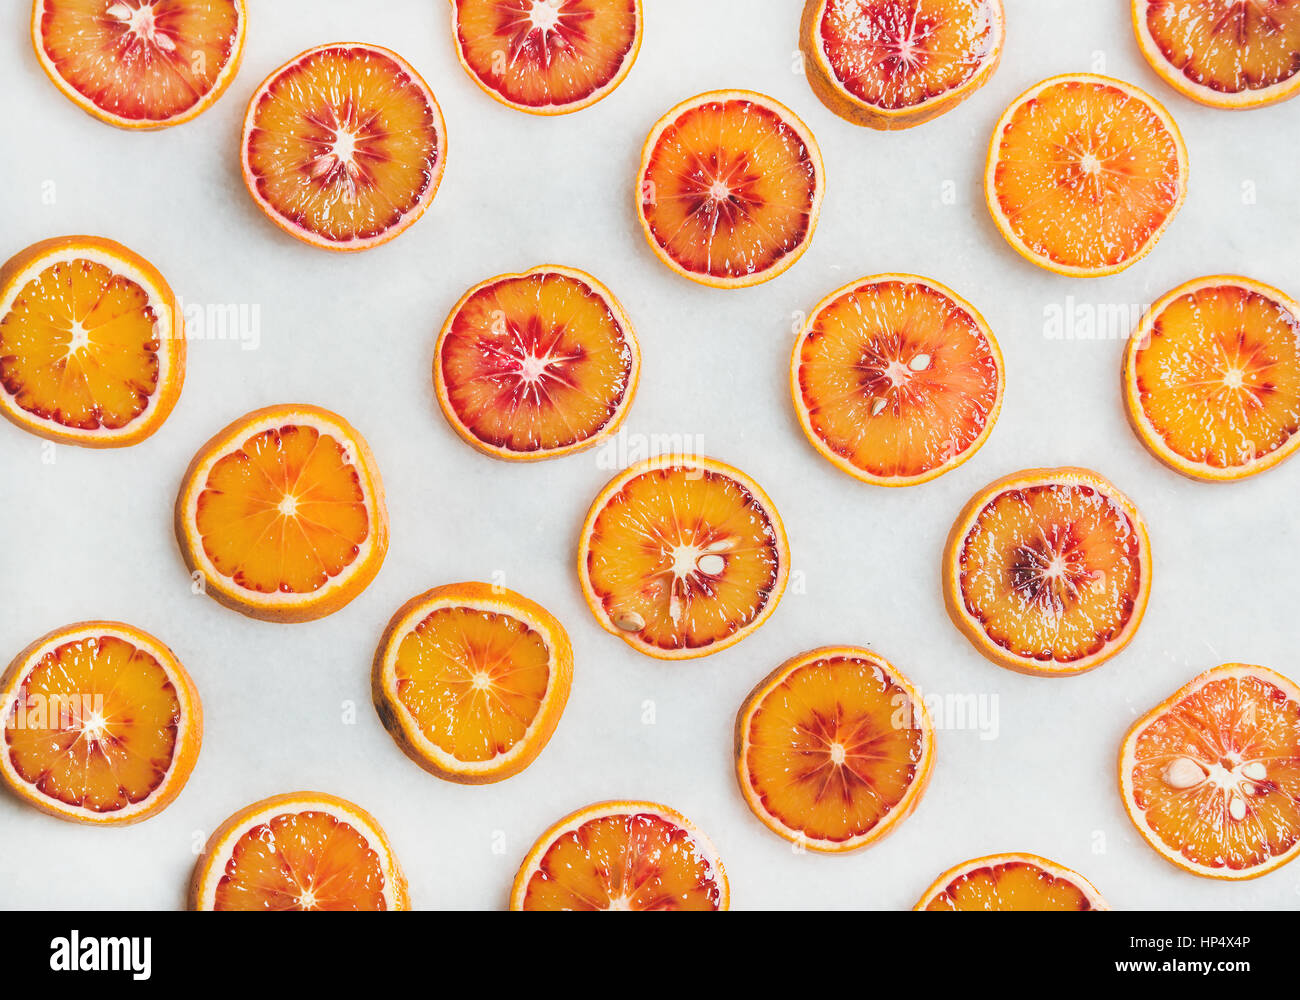 Natural fruit pattern concept. Fresh juicy blood orange slices over light marble table background, top view - Stock Image